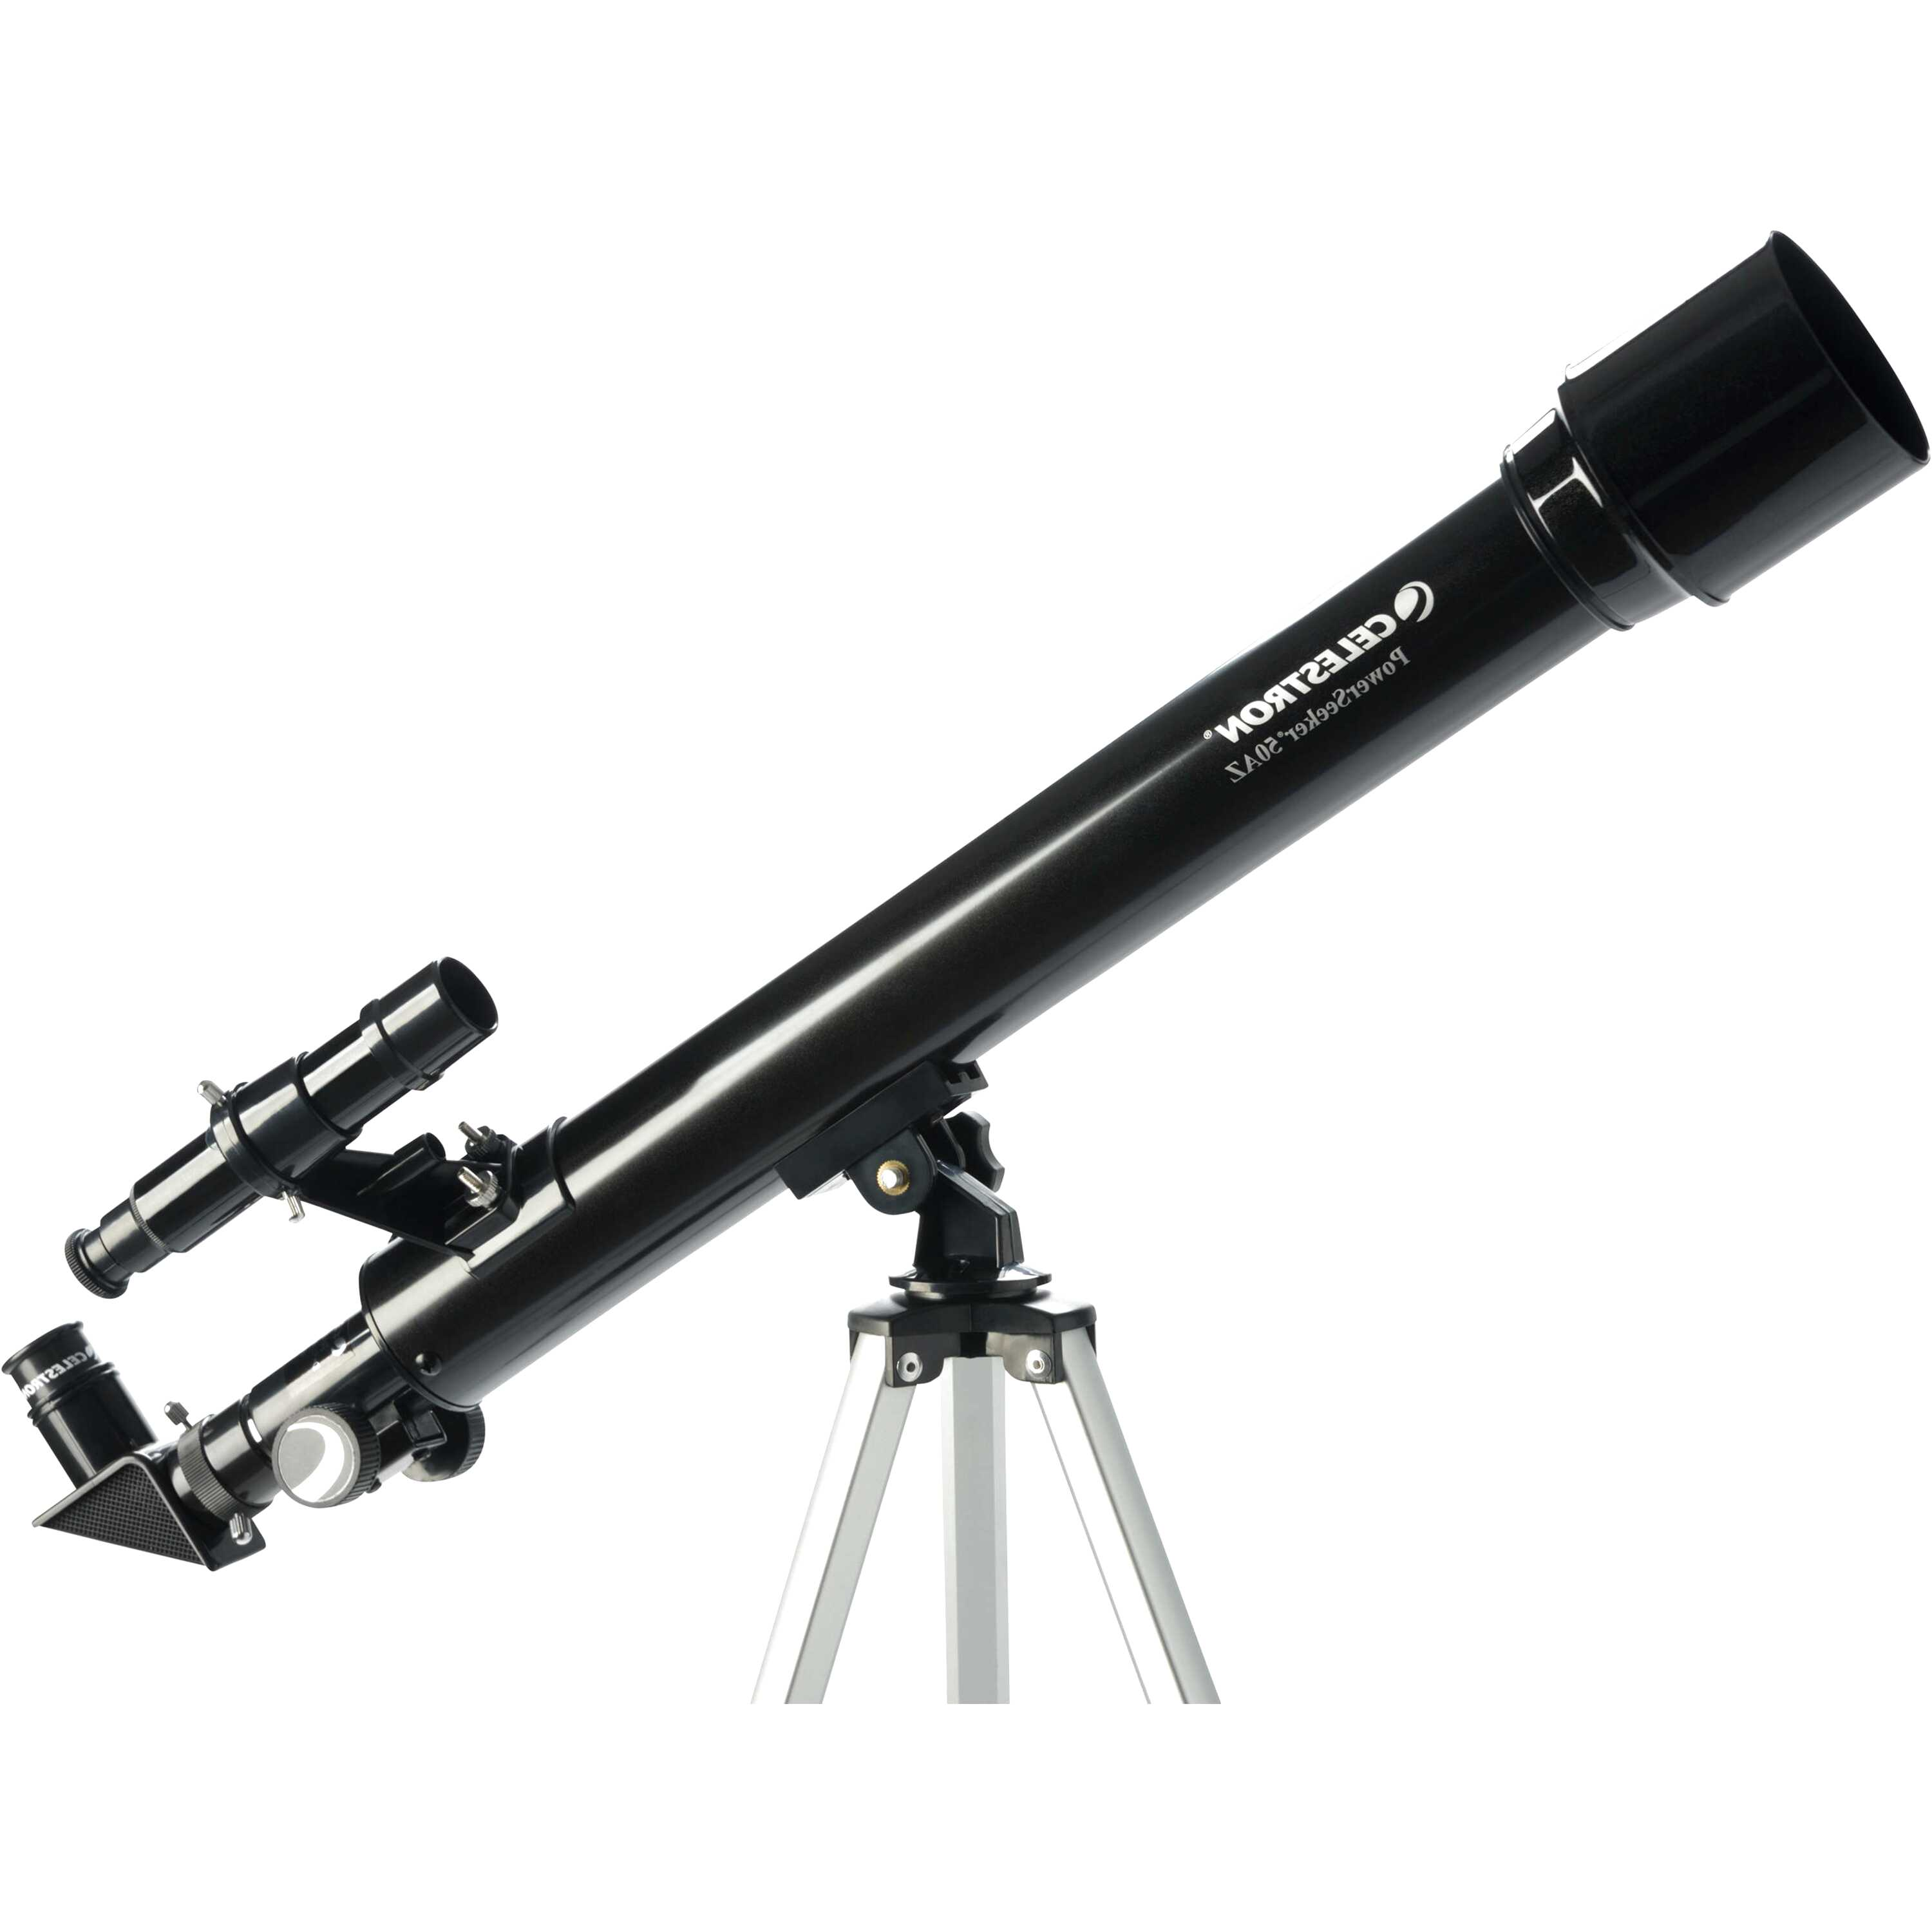 Refractor Telescope For Sale Only 4 Left At 65